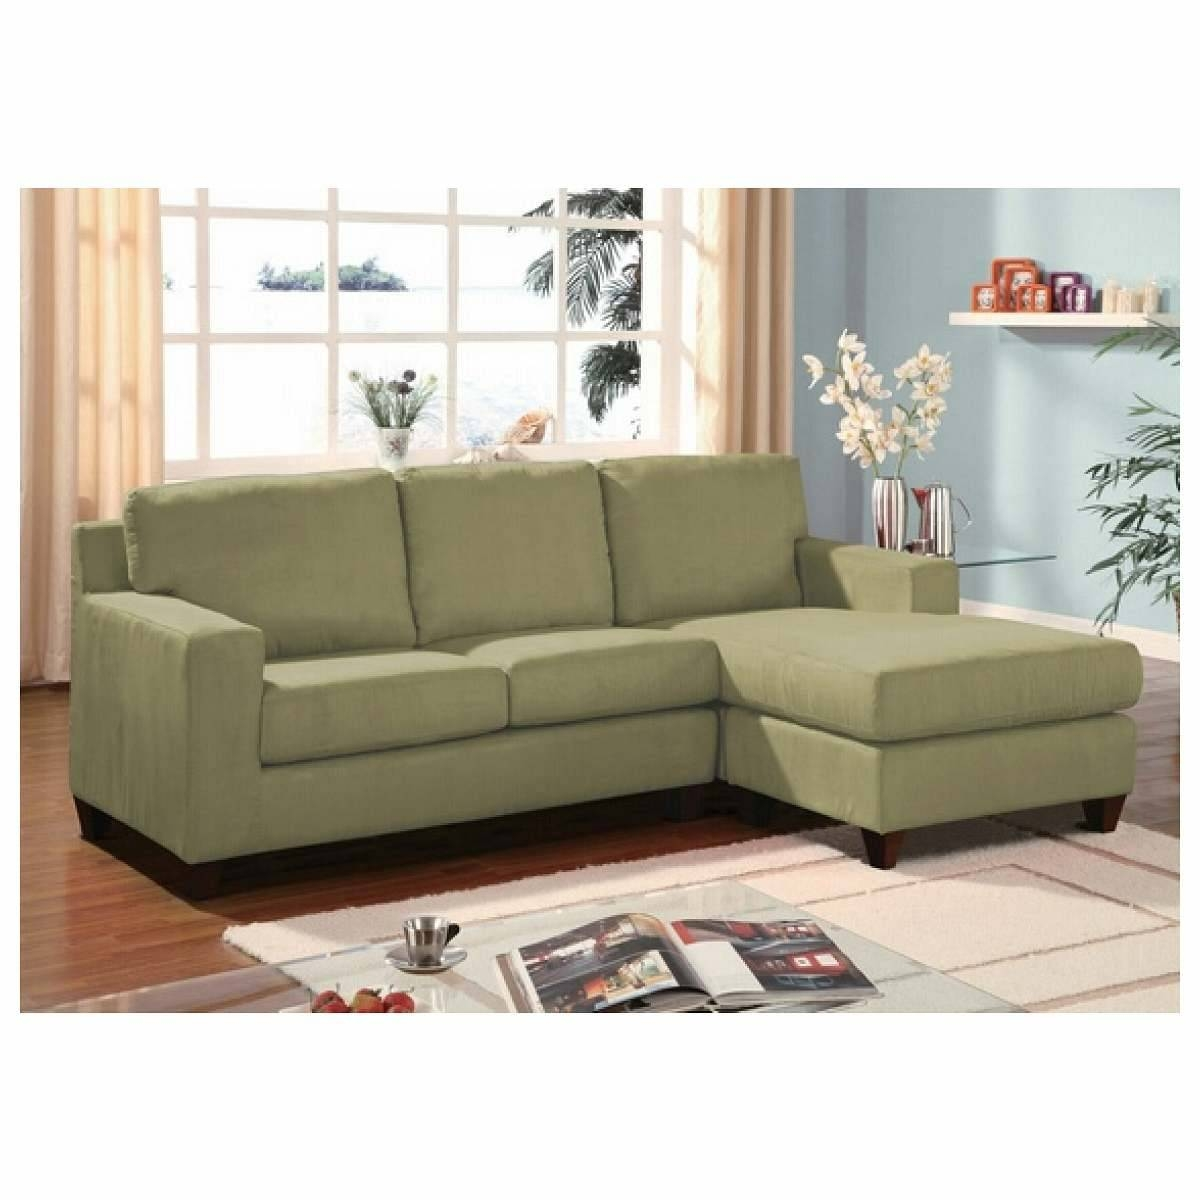 Furniture Home : Green Microfiber Reversible Sectional Sofa With inside Green Sectional Sofa With Chaise (Image 7 of 30)